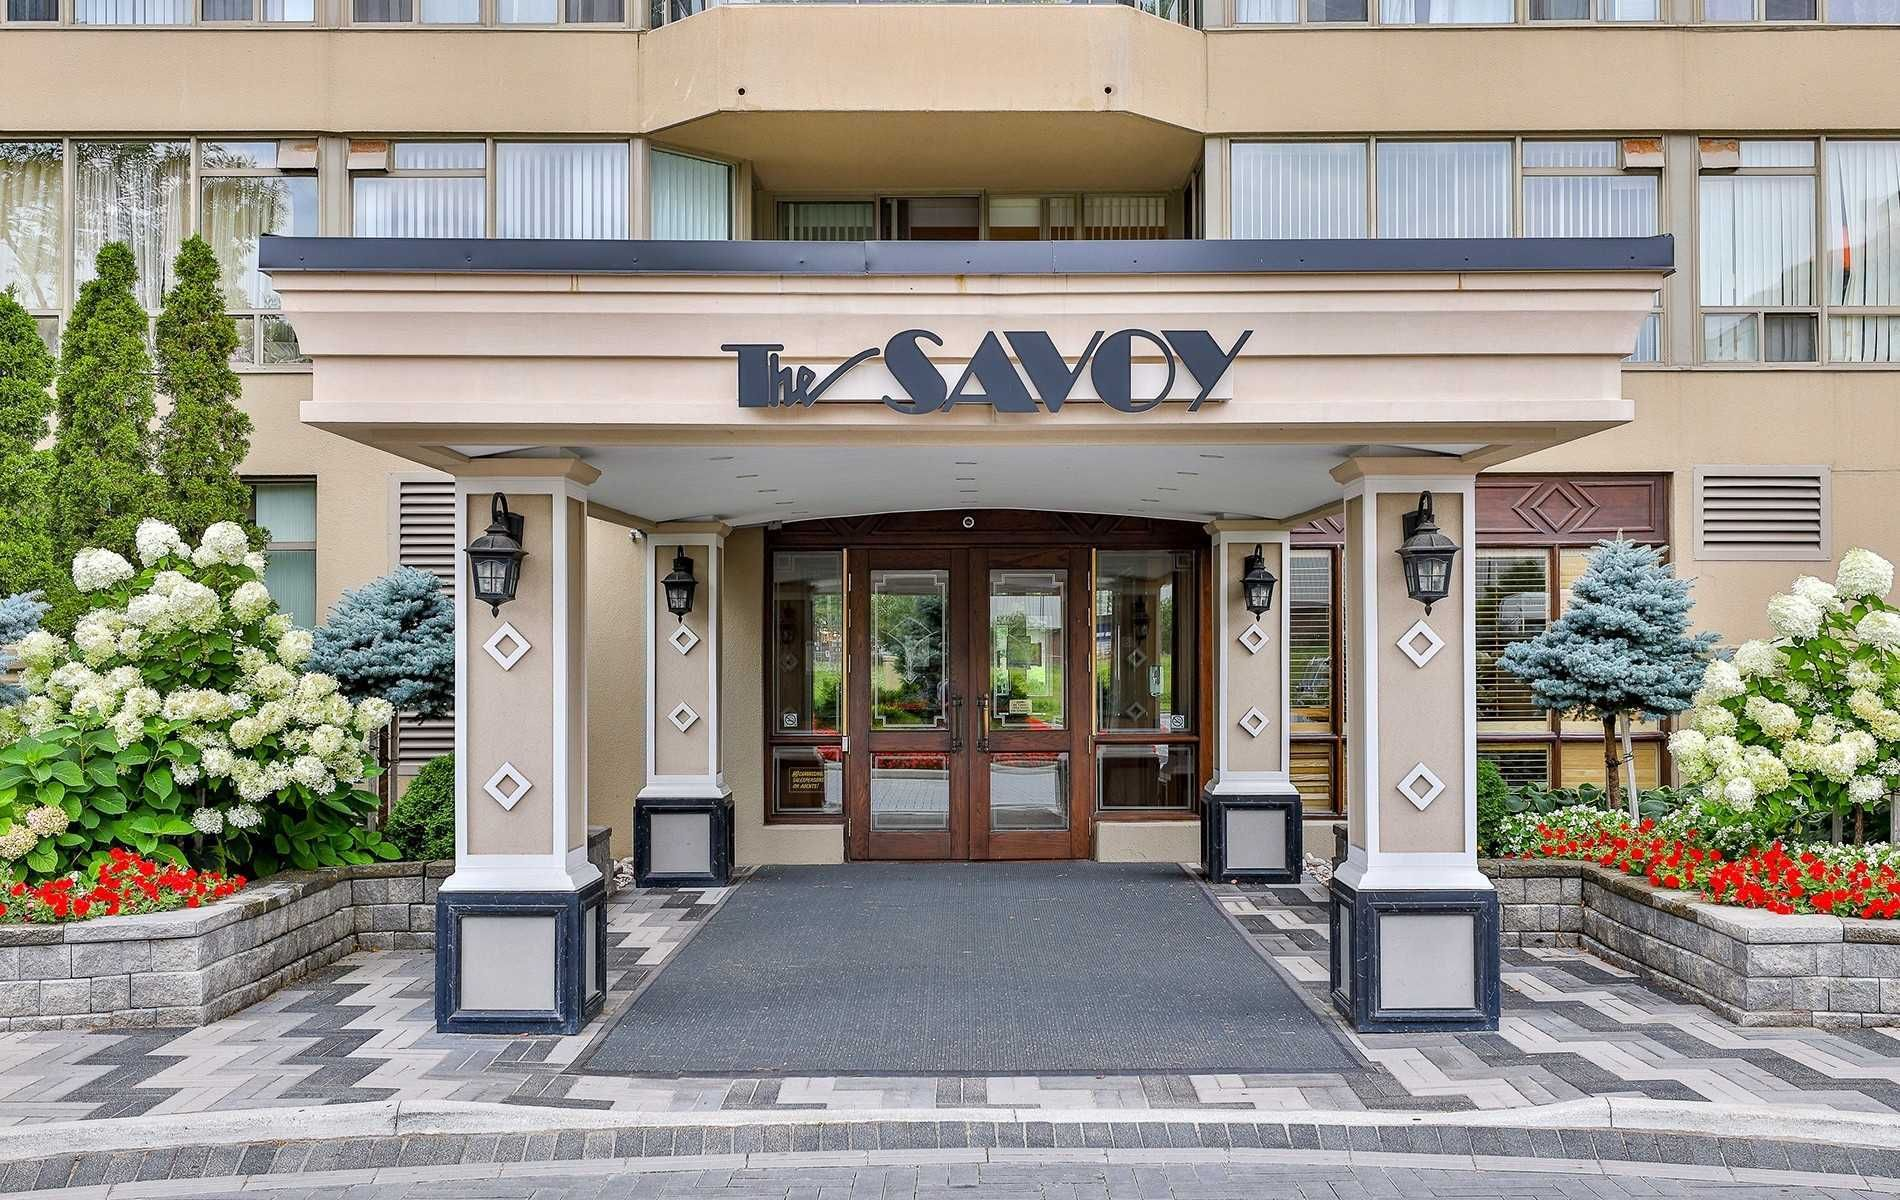 The Savoy 10 Torresdale, #208